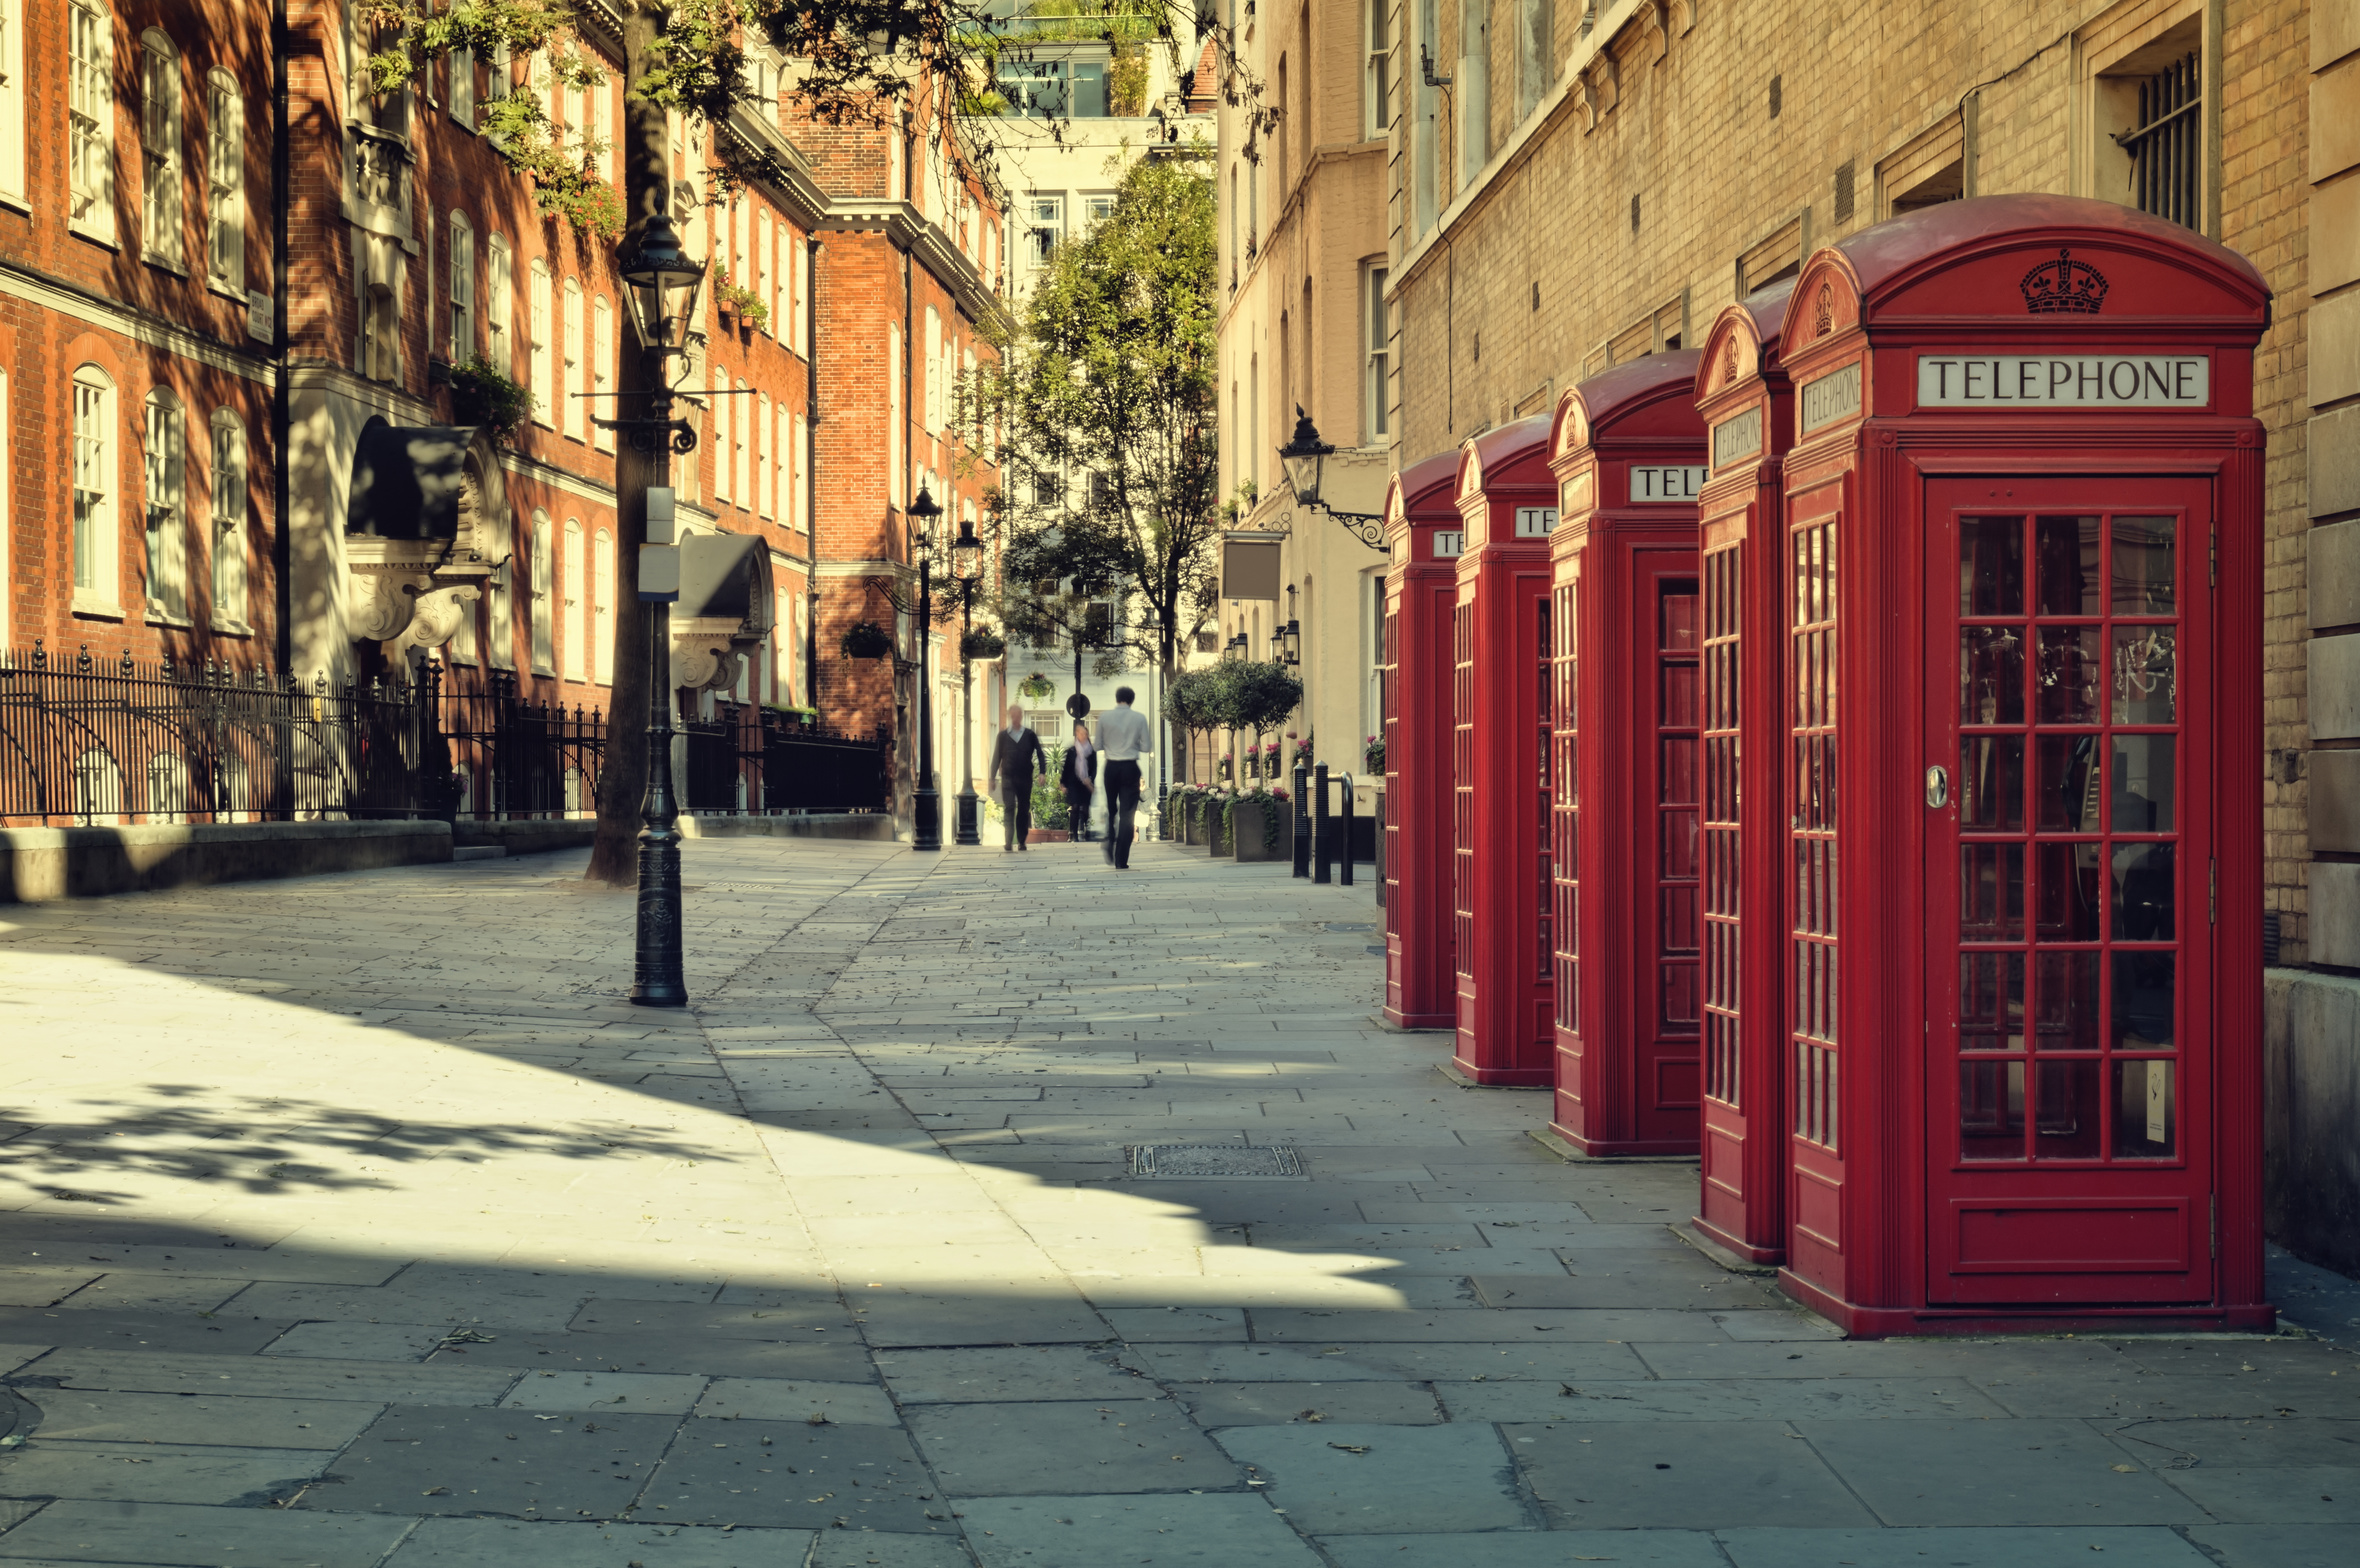 Street with a Tradicional Red Phone Boxes near Covent Garden, London